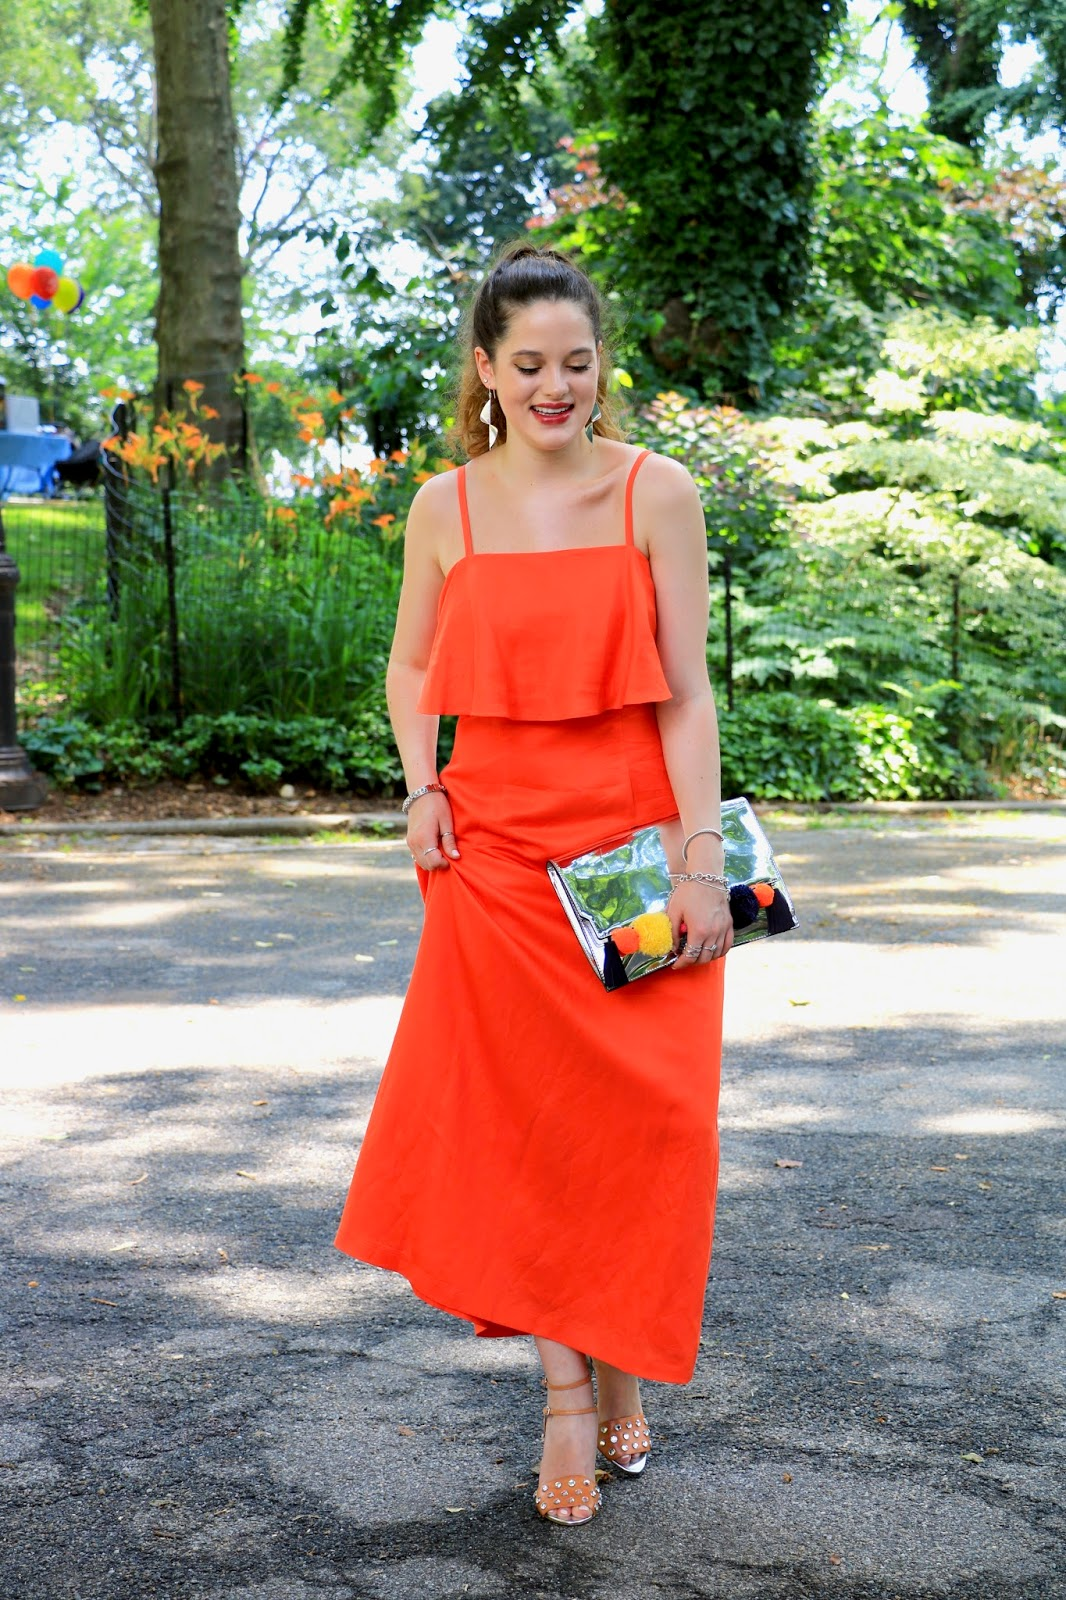 Fashion blogger Kathleen Harper of Kat's Fashion Fix wearing an orange maxi dress